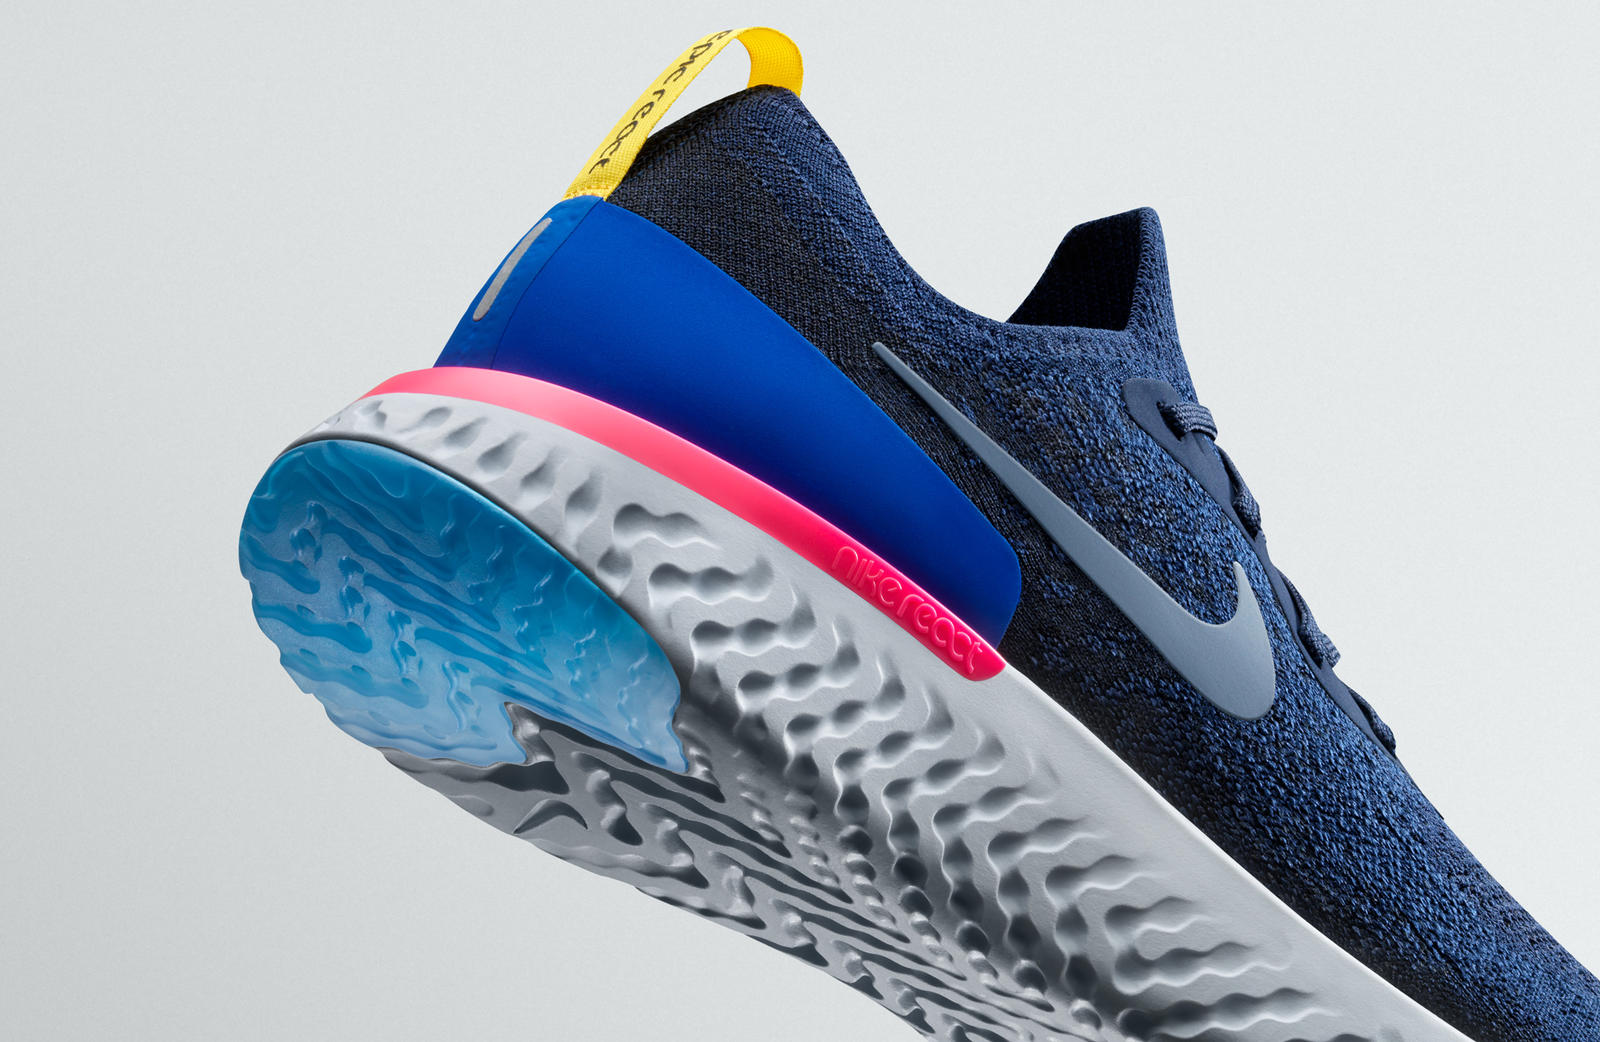 b2eed8671a6 Nike Epic React Flyknit Running Shoe - Nike News